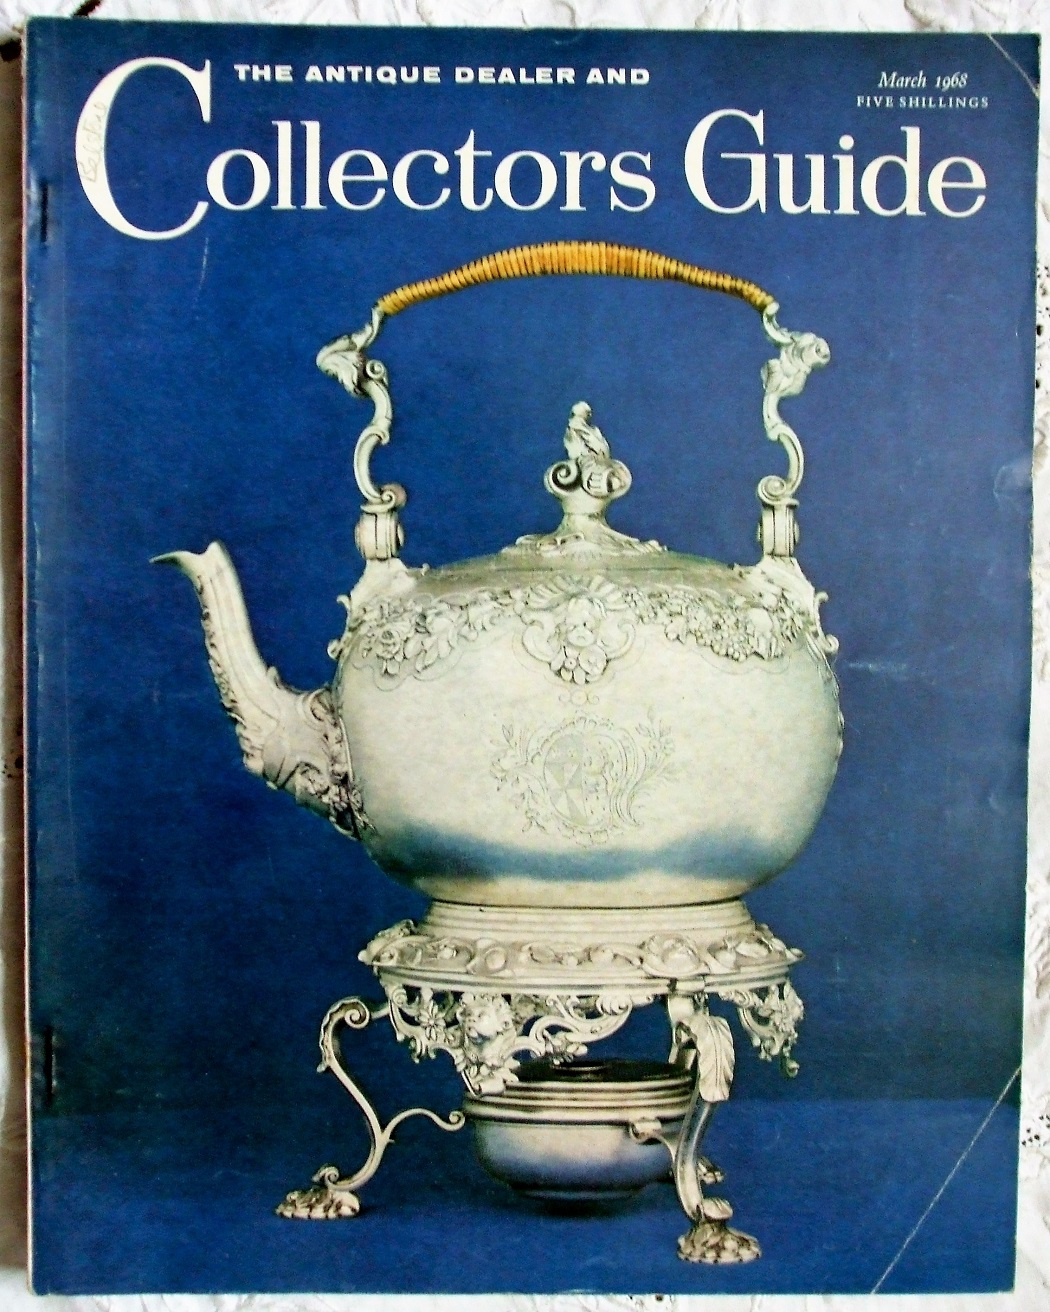 Collectors Guide March 1968